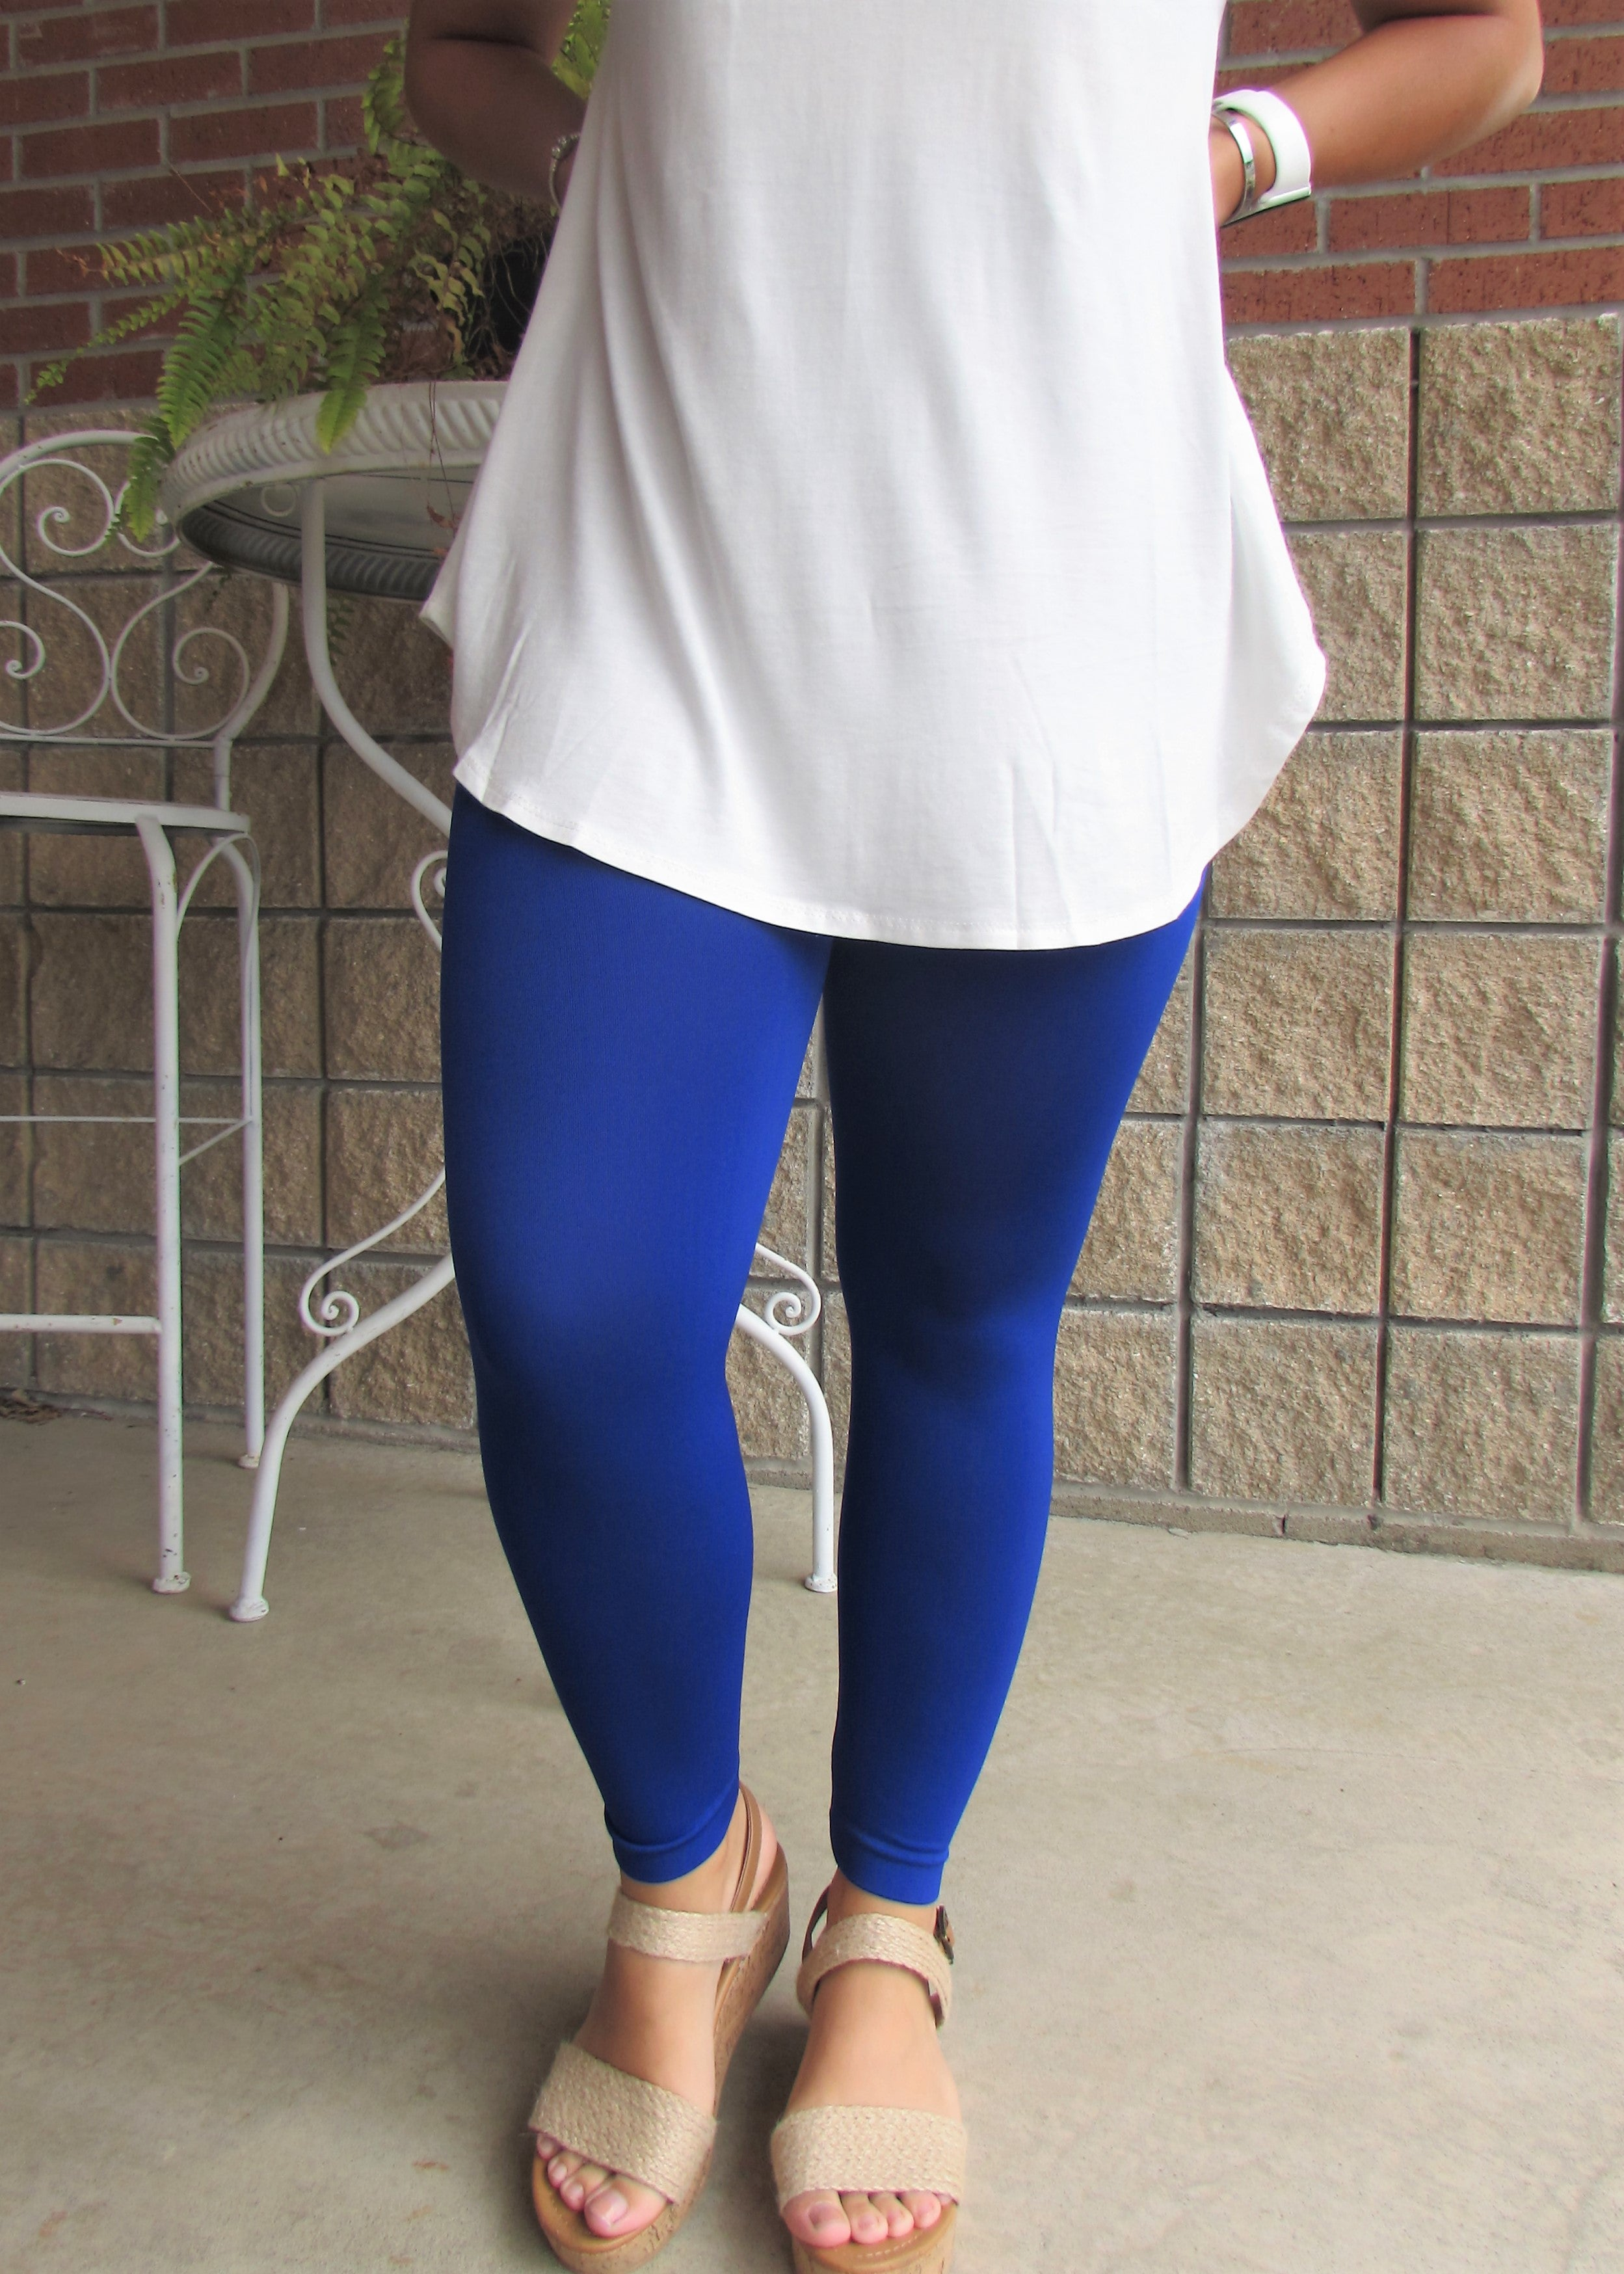 Leggings- Solid Blue Capri Leggings